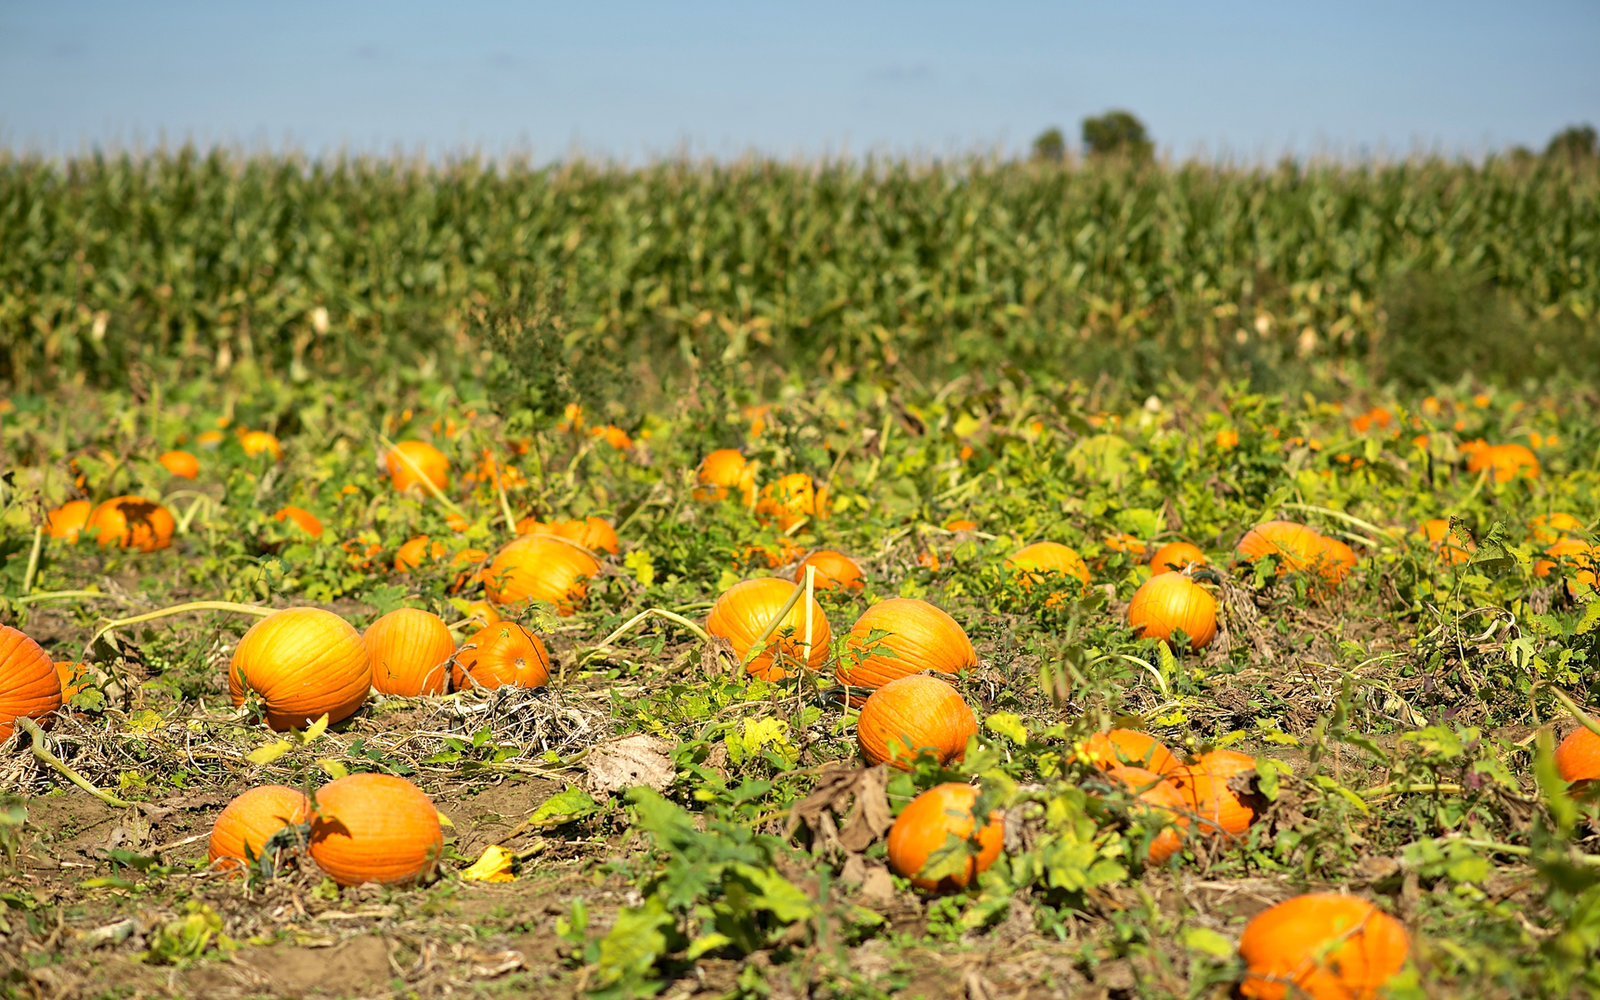 A Pumpkin Patch full of pumpkins in  October at a local farm in Southern New Jersey.